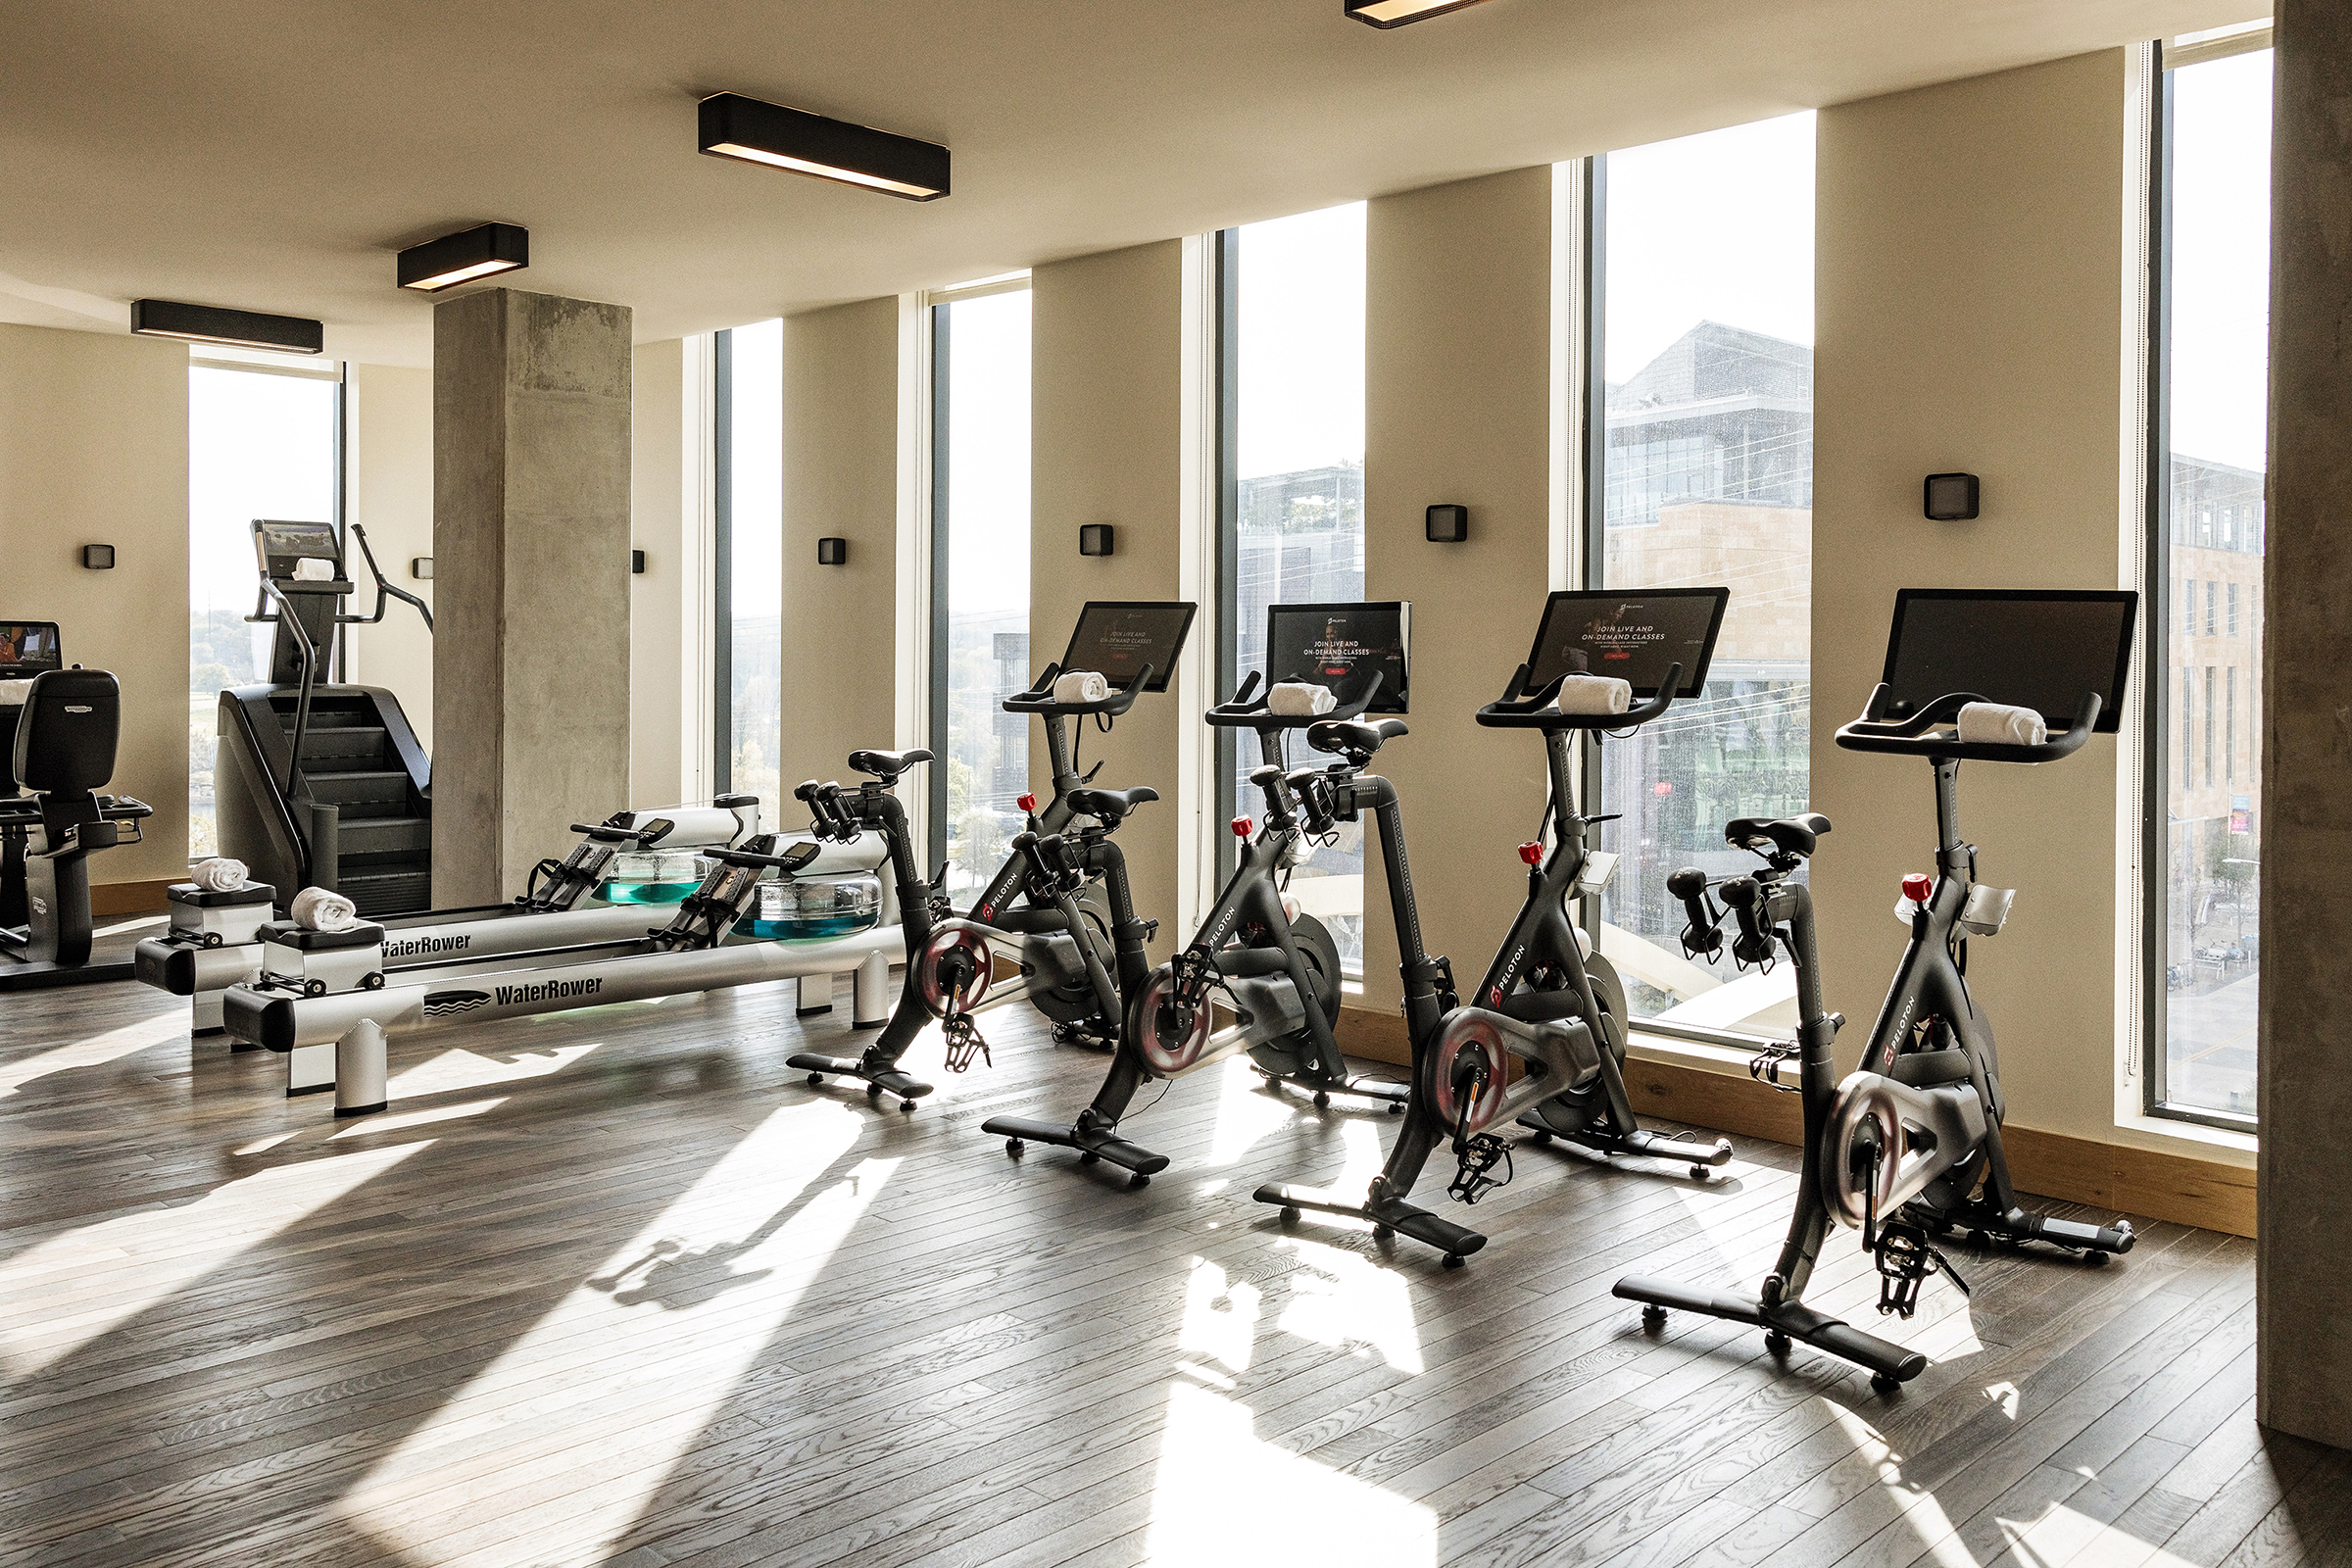 Inside the fitness center on the fourth floor of the Proper Hotel in austin